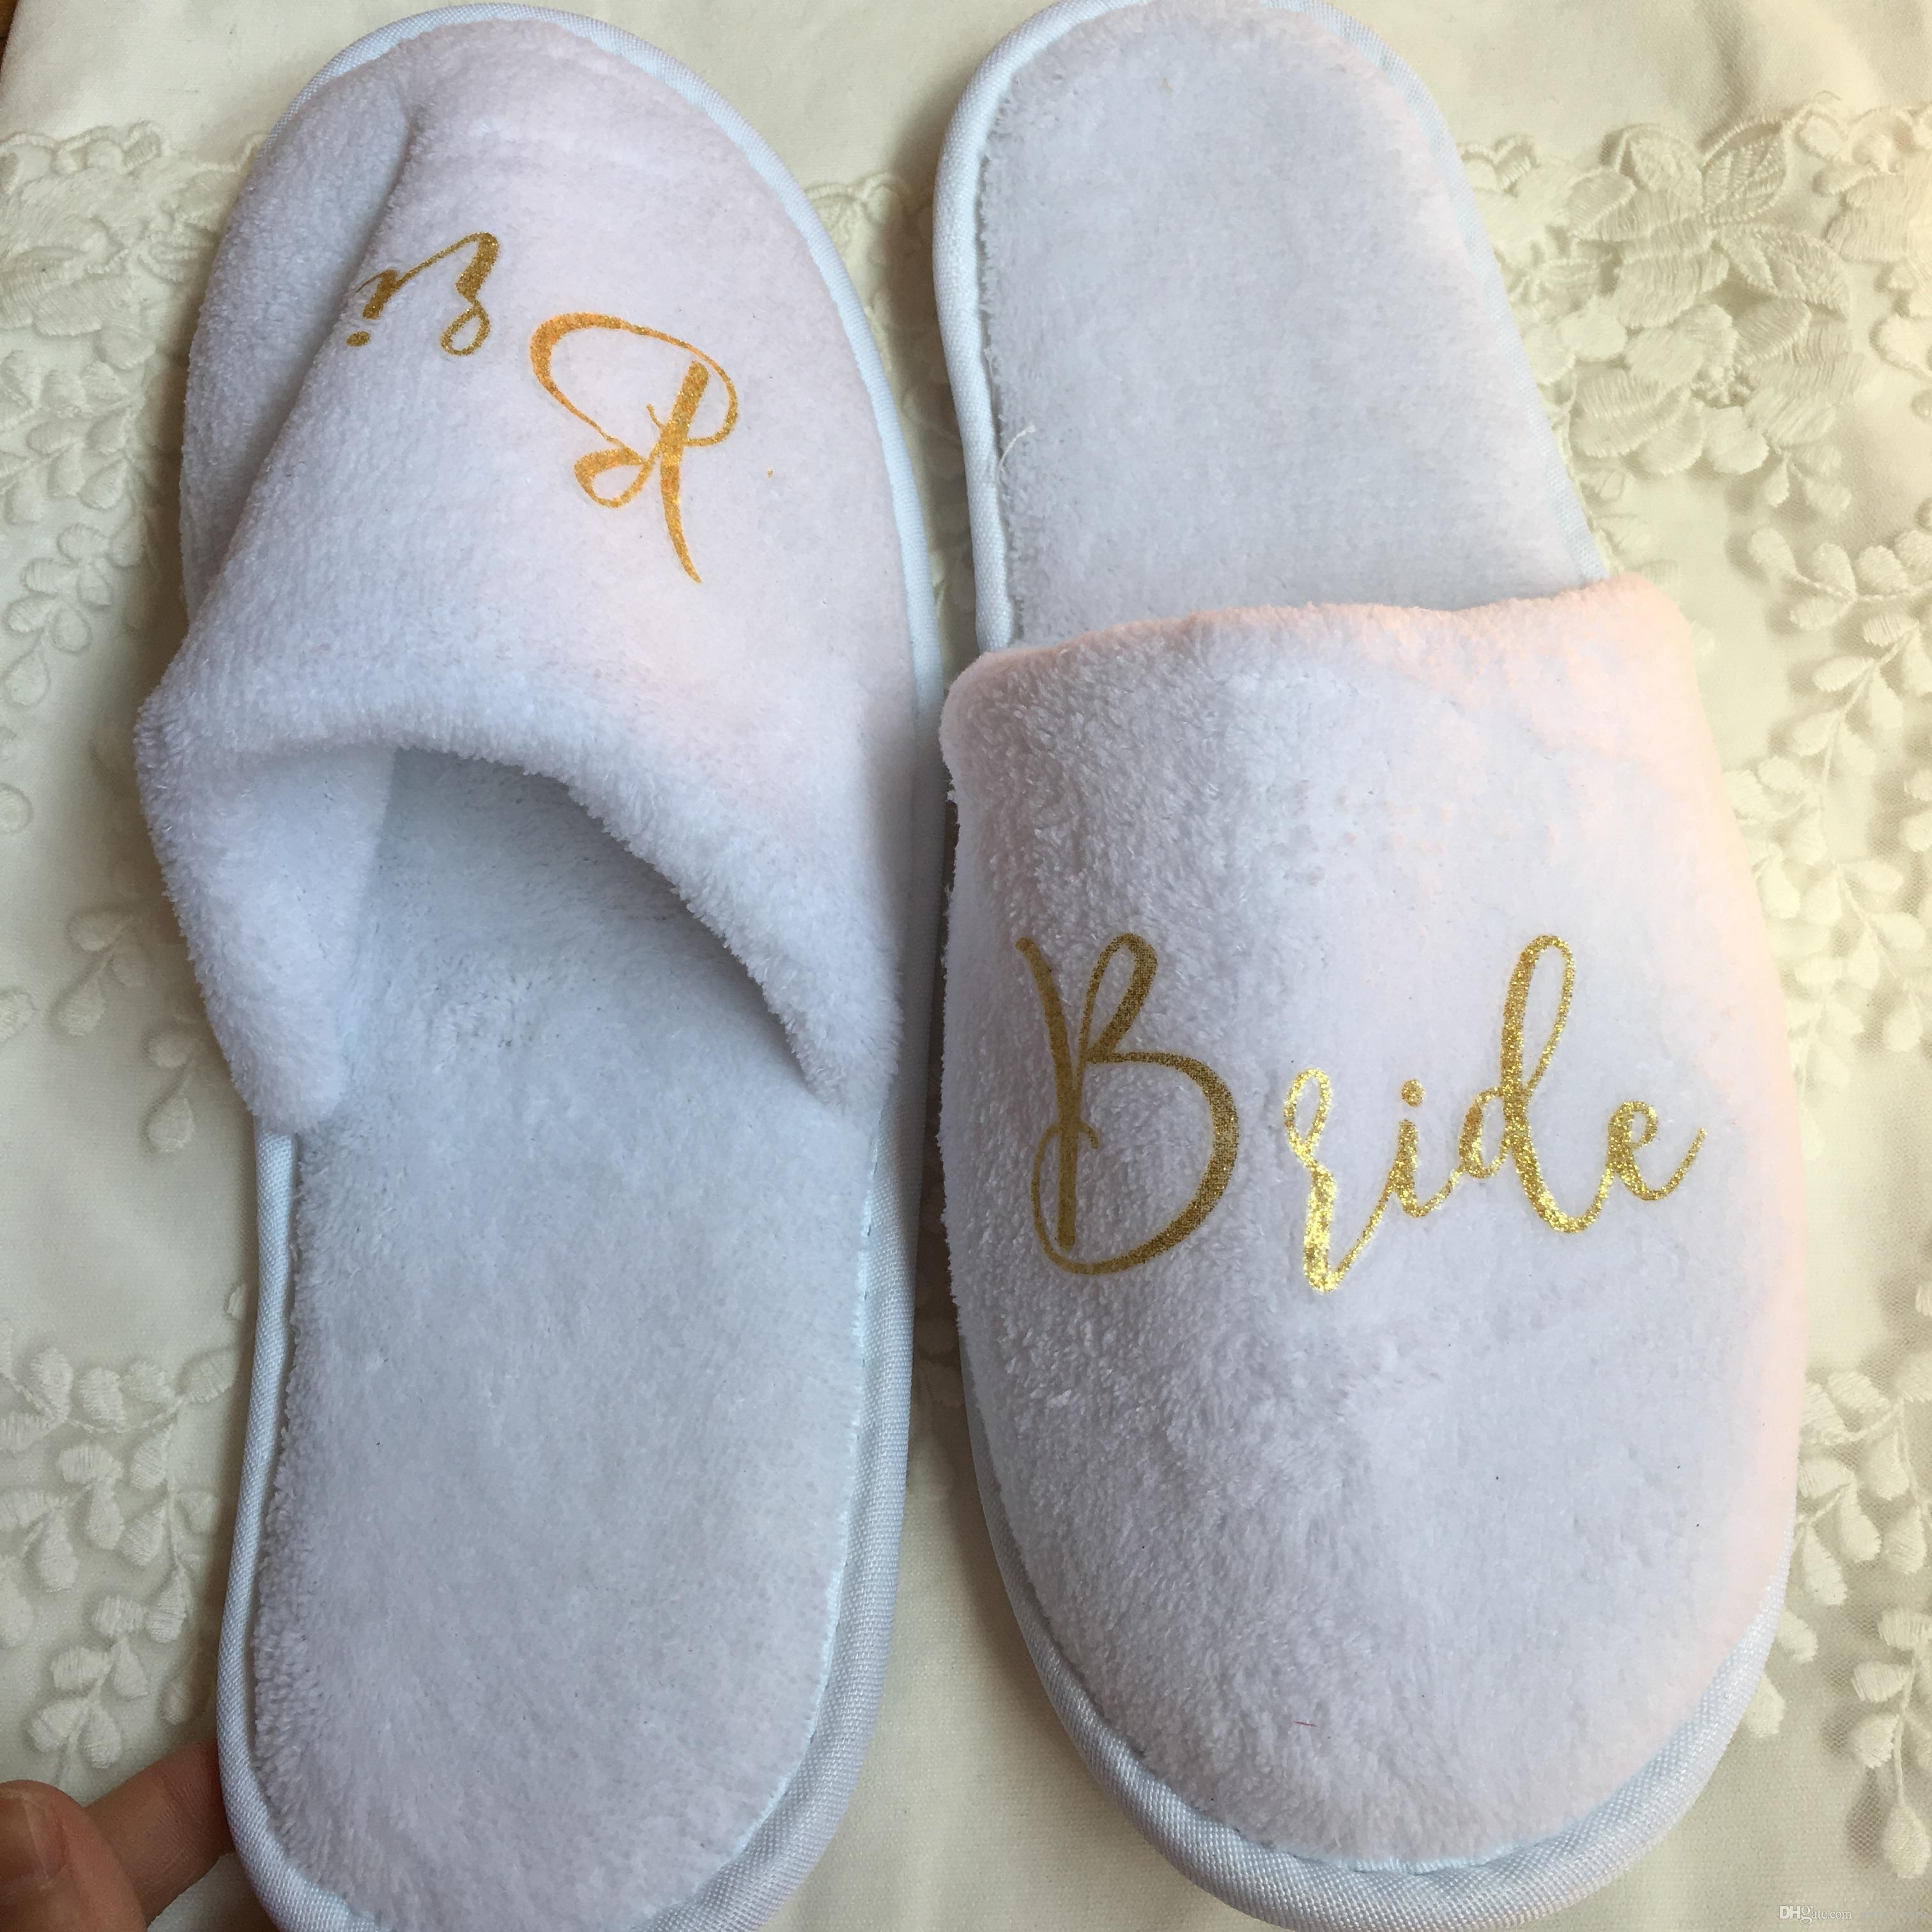 a21729498 White Red Wedding Slippers Bride Be To Hen Party Favors Bridesmaid Gifts  Wedding Favor Stickers Make Wedding Favors From Giftsfavors